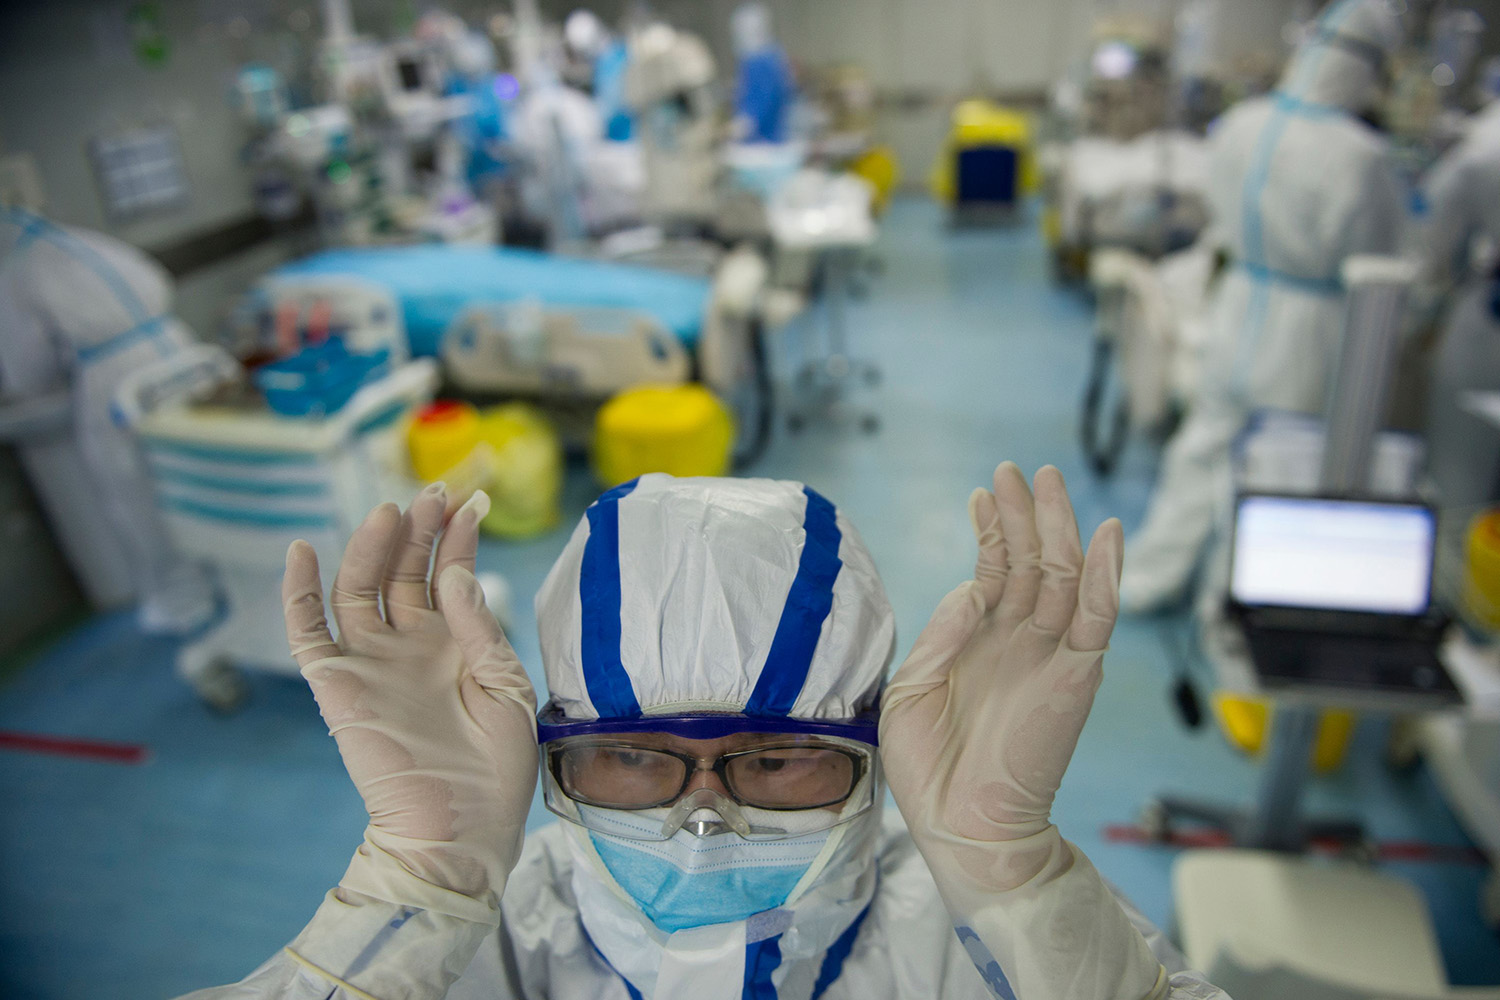 A nurse adjusts his goggles in an intensive care unit treating coronavirus patients at a hospital in Wuhan, China, on Feb. 26.. STR/AFP via Getty Images